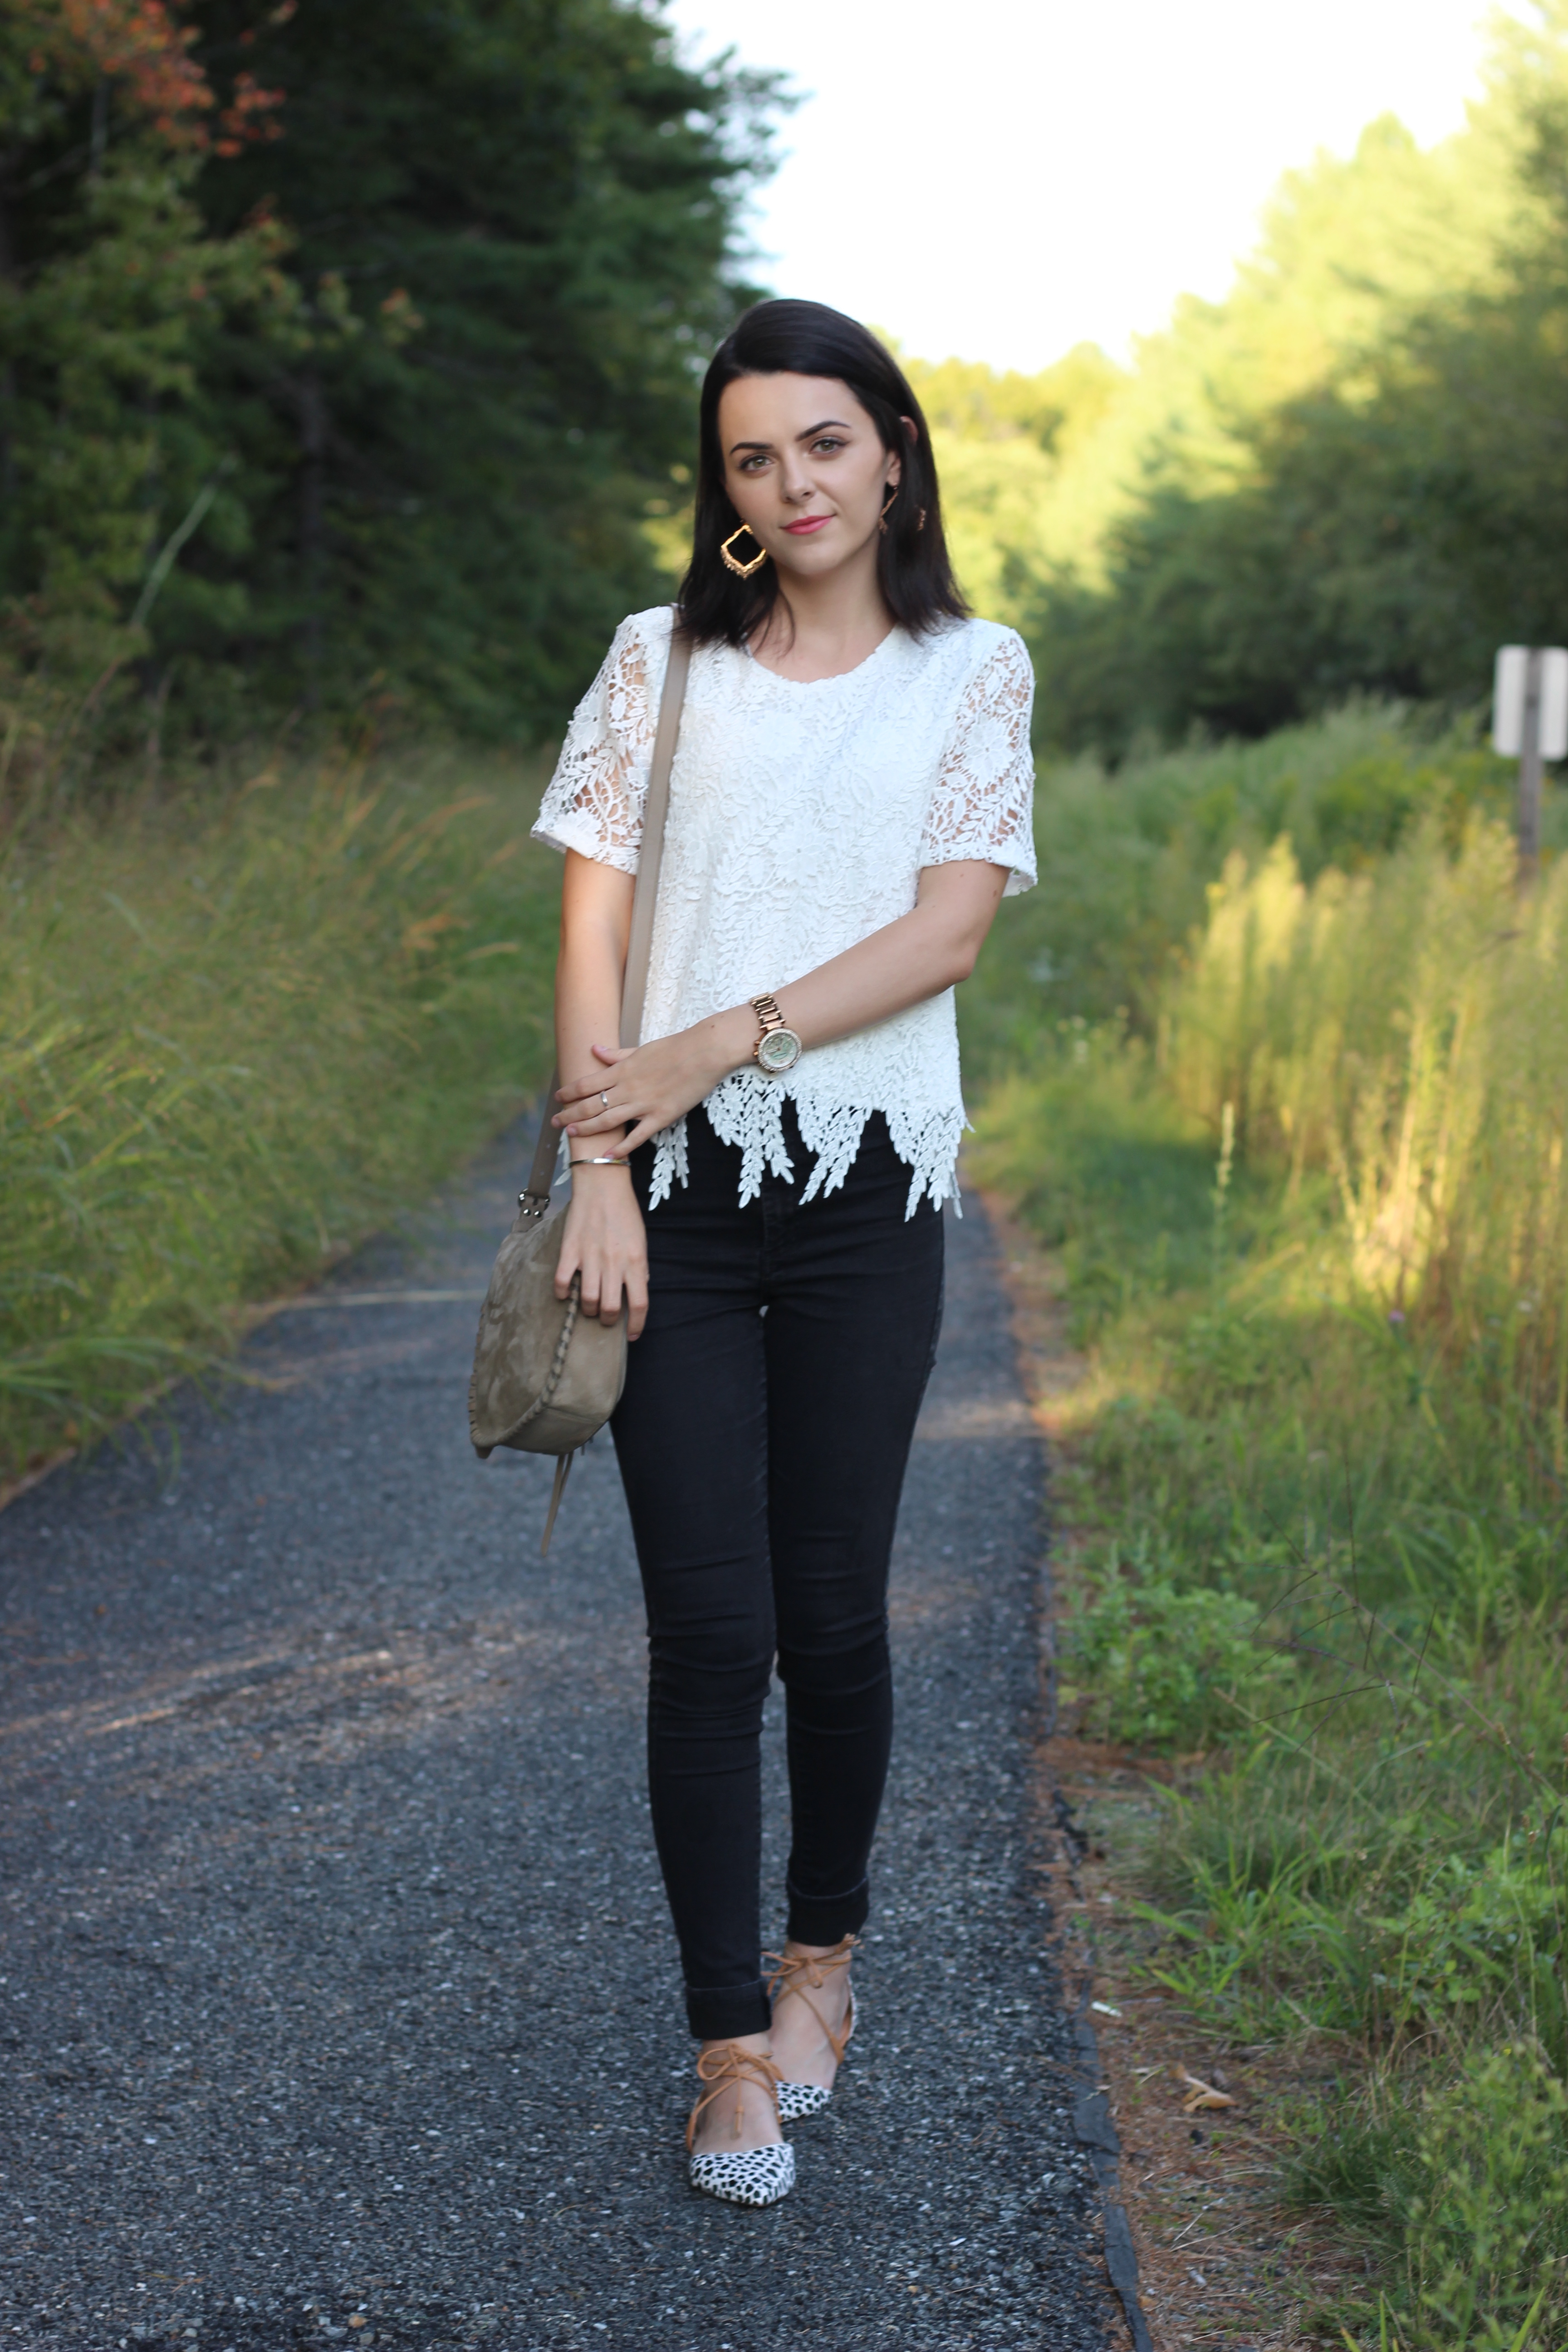 Lace Top + Giraffe Printed Flats : OOTD